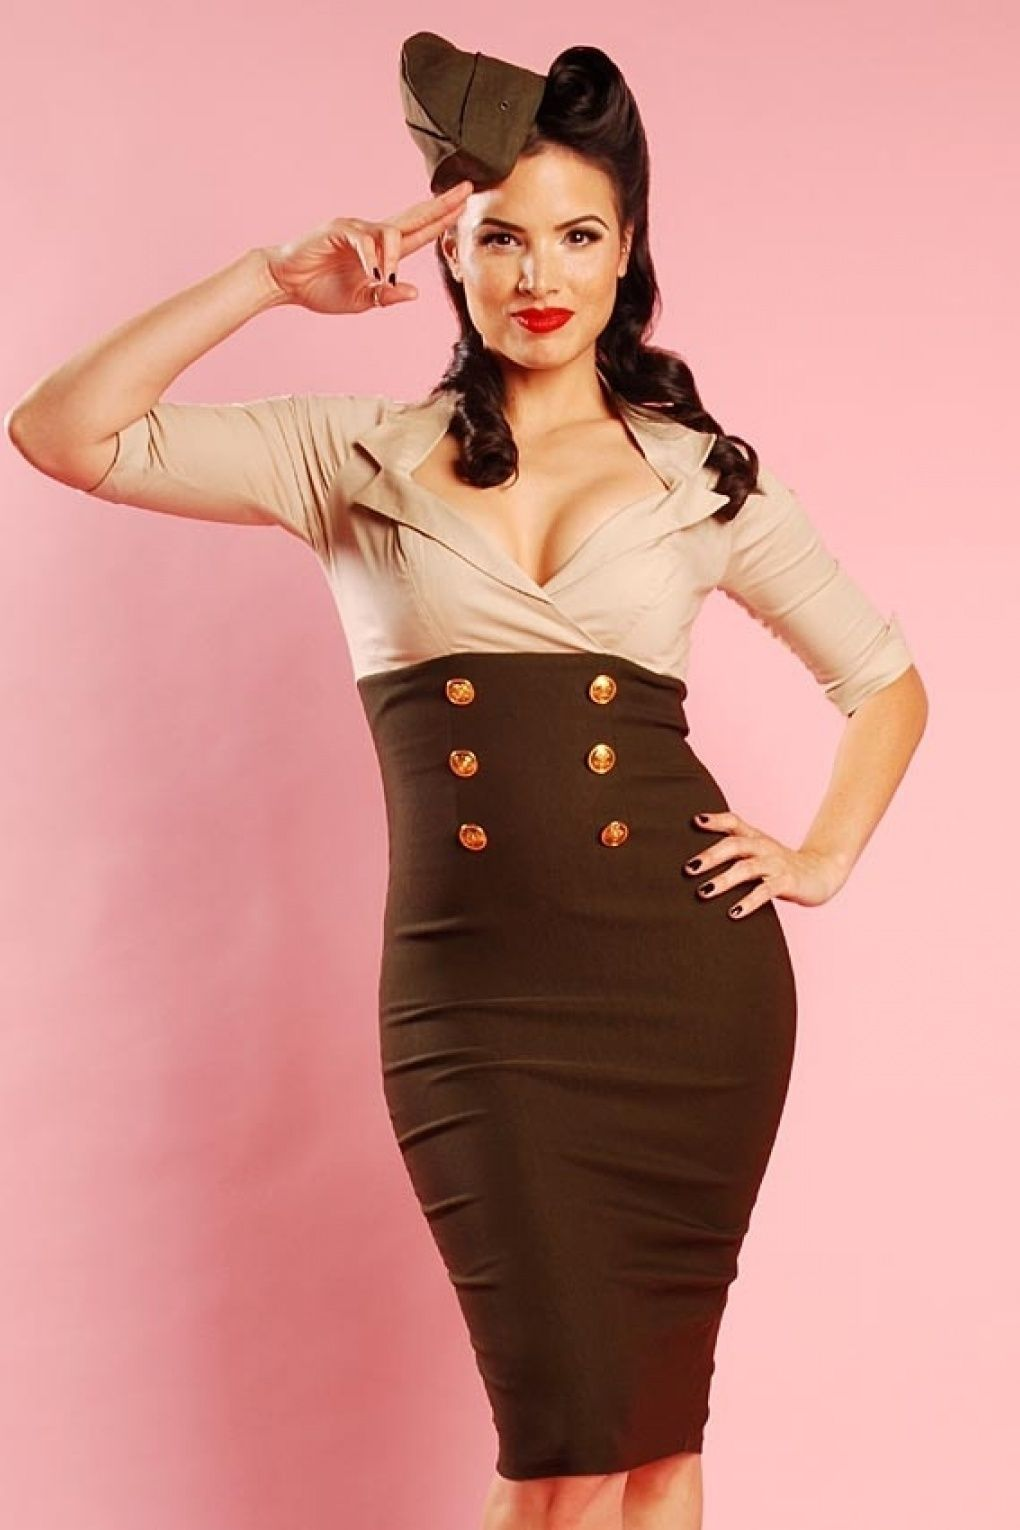 pinup clothing | dresses green dresses pinup couture military ...